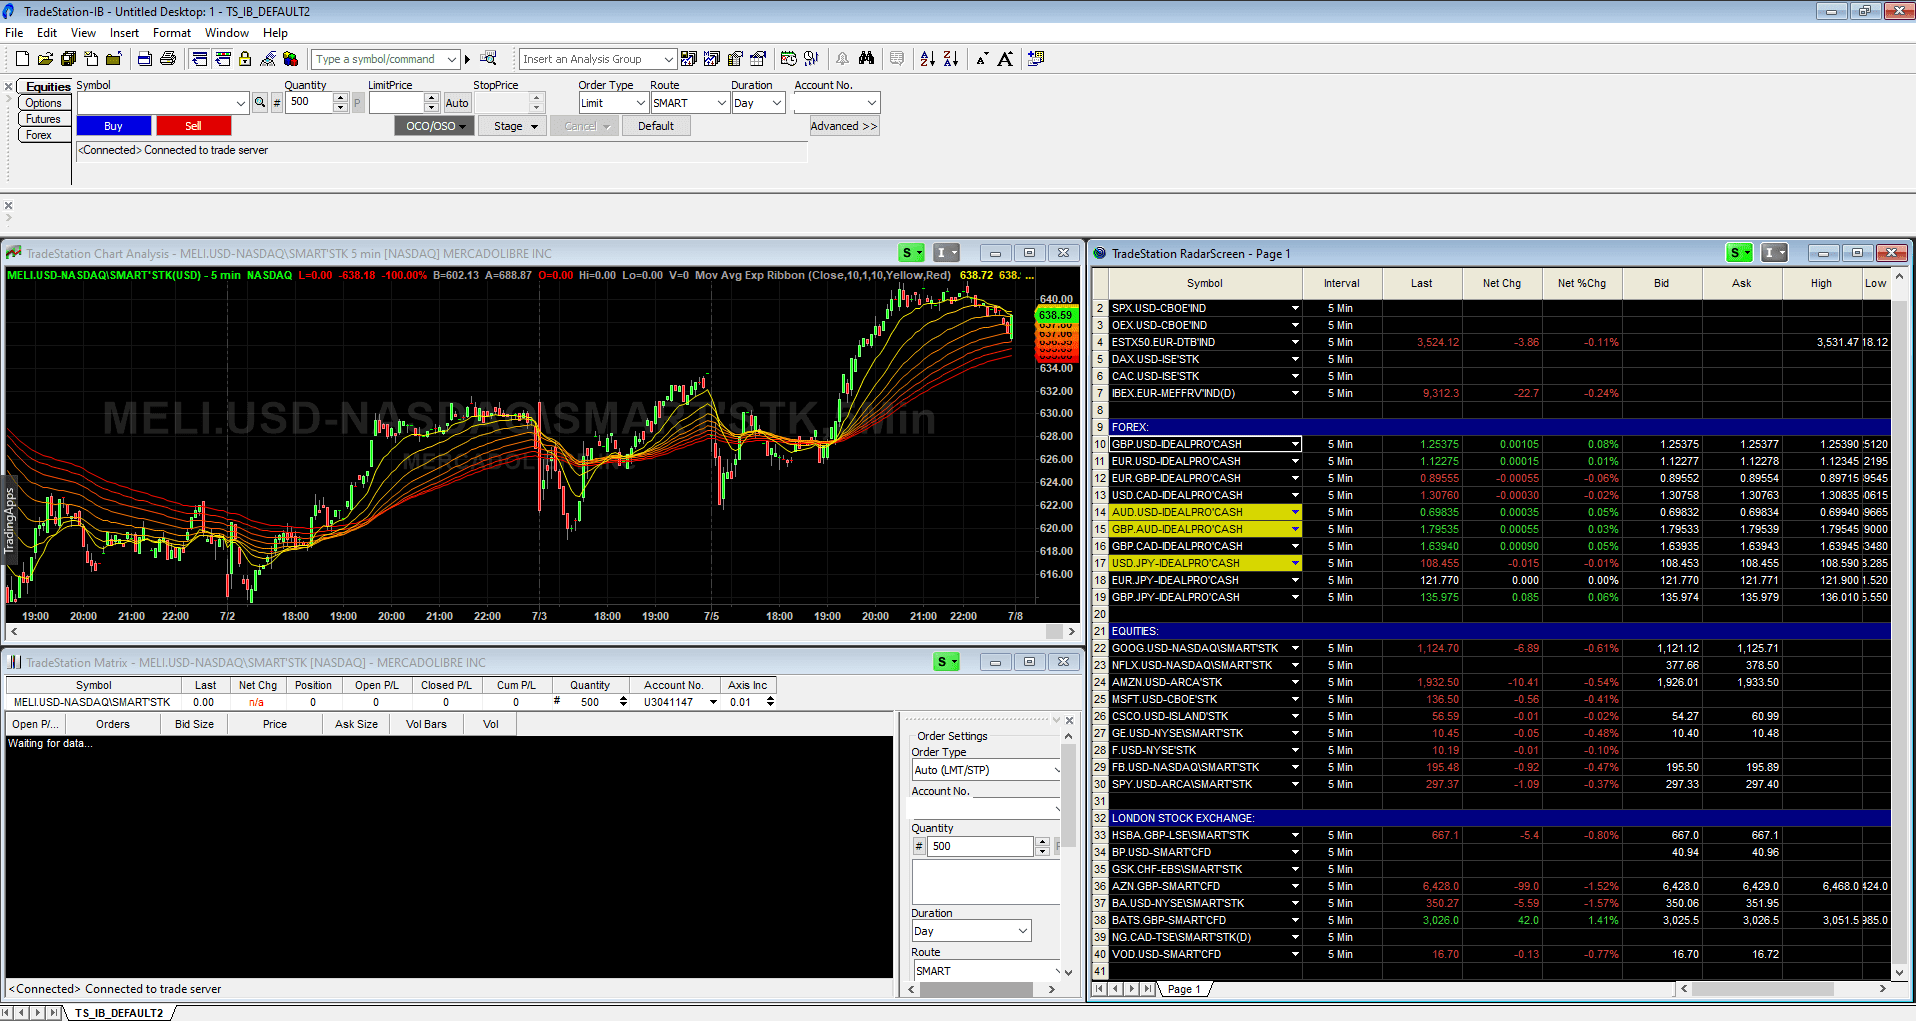 Tradestation how to trade options on 9.5